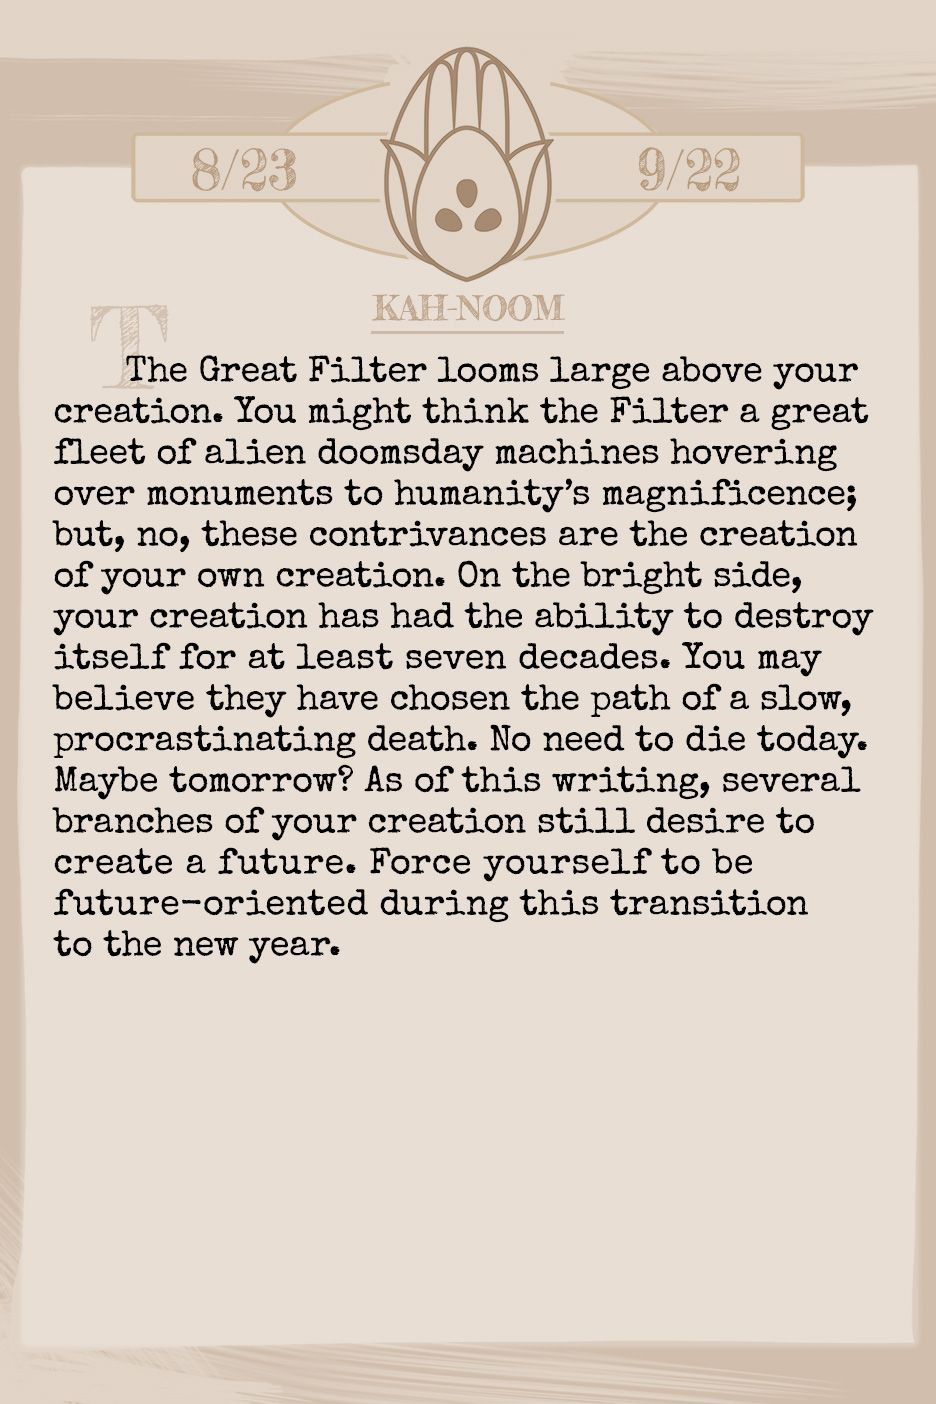 January 2019 Horoscope (Old sign: Virgo) The Great Filter looms large above your creation. You might think the Filter a great fleet of alien doomsday machines hovering over monuments to humanity's magnificence; but, no, these contrivances are the creation of your own creation. On the bright side, your creation has had the ability to destroy itself for at least seven decades. You may believe they have chosen the path of a slow, procrastinating death. No need to die today. Maybe tomorrow? As of this writing, several branches of your creation still desire to create a future. Force yourself to be future-oriented during this transition to the new year.